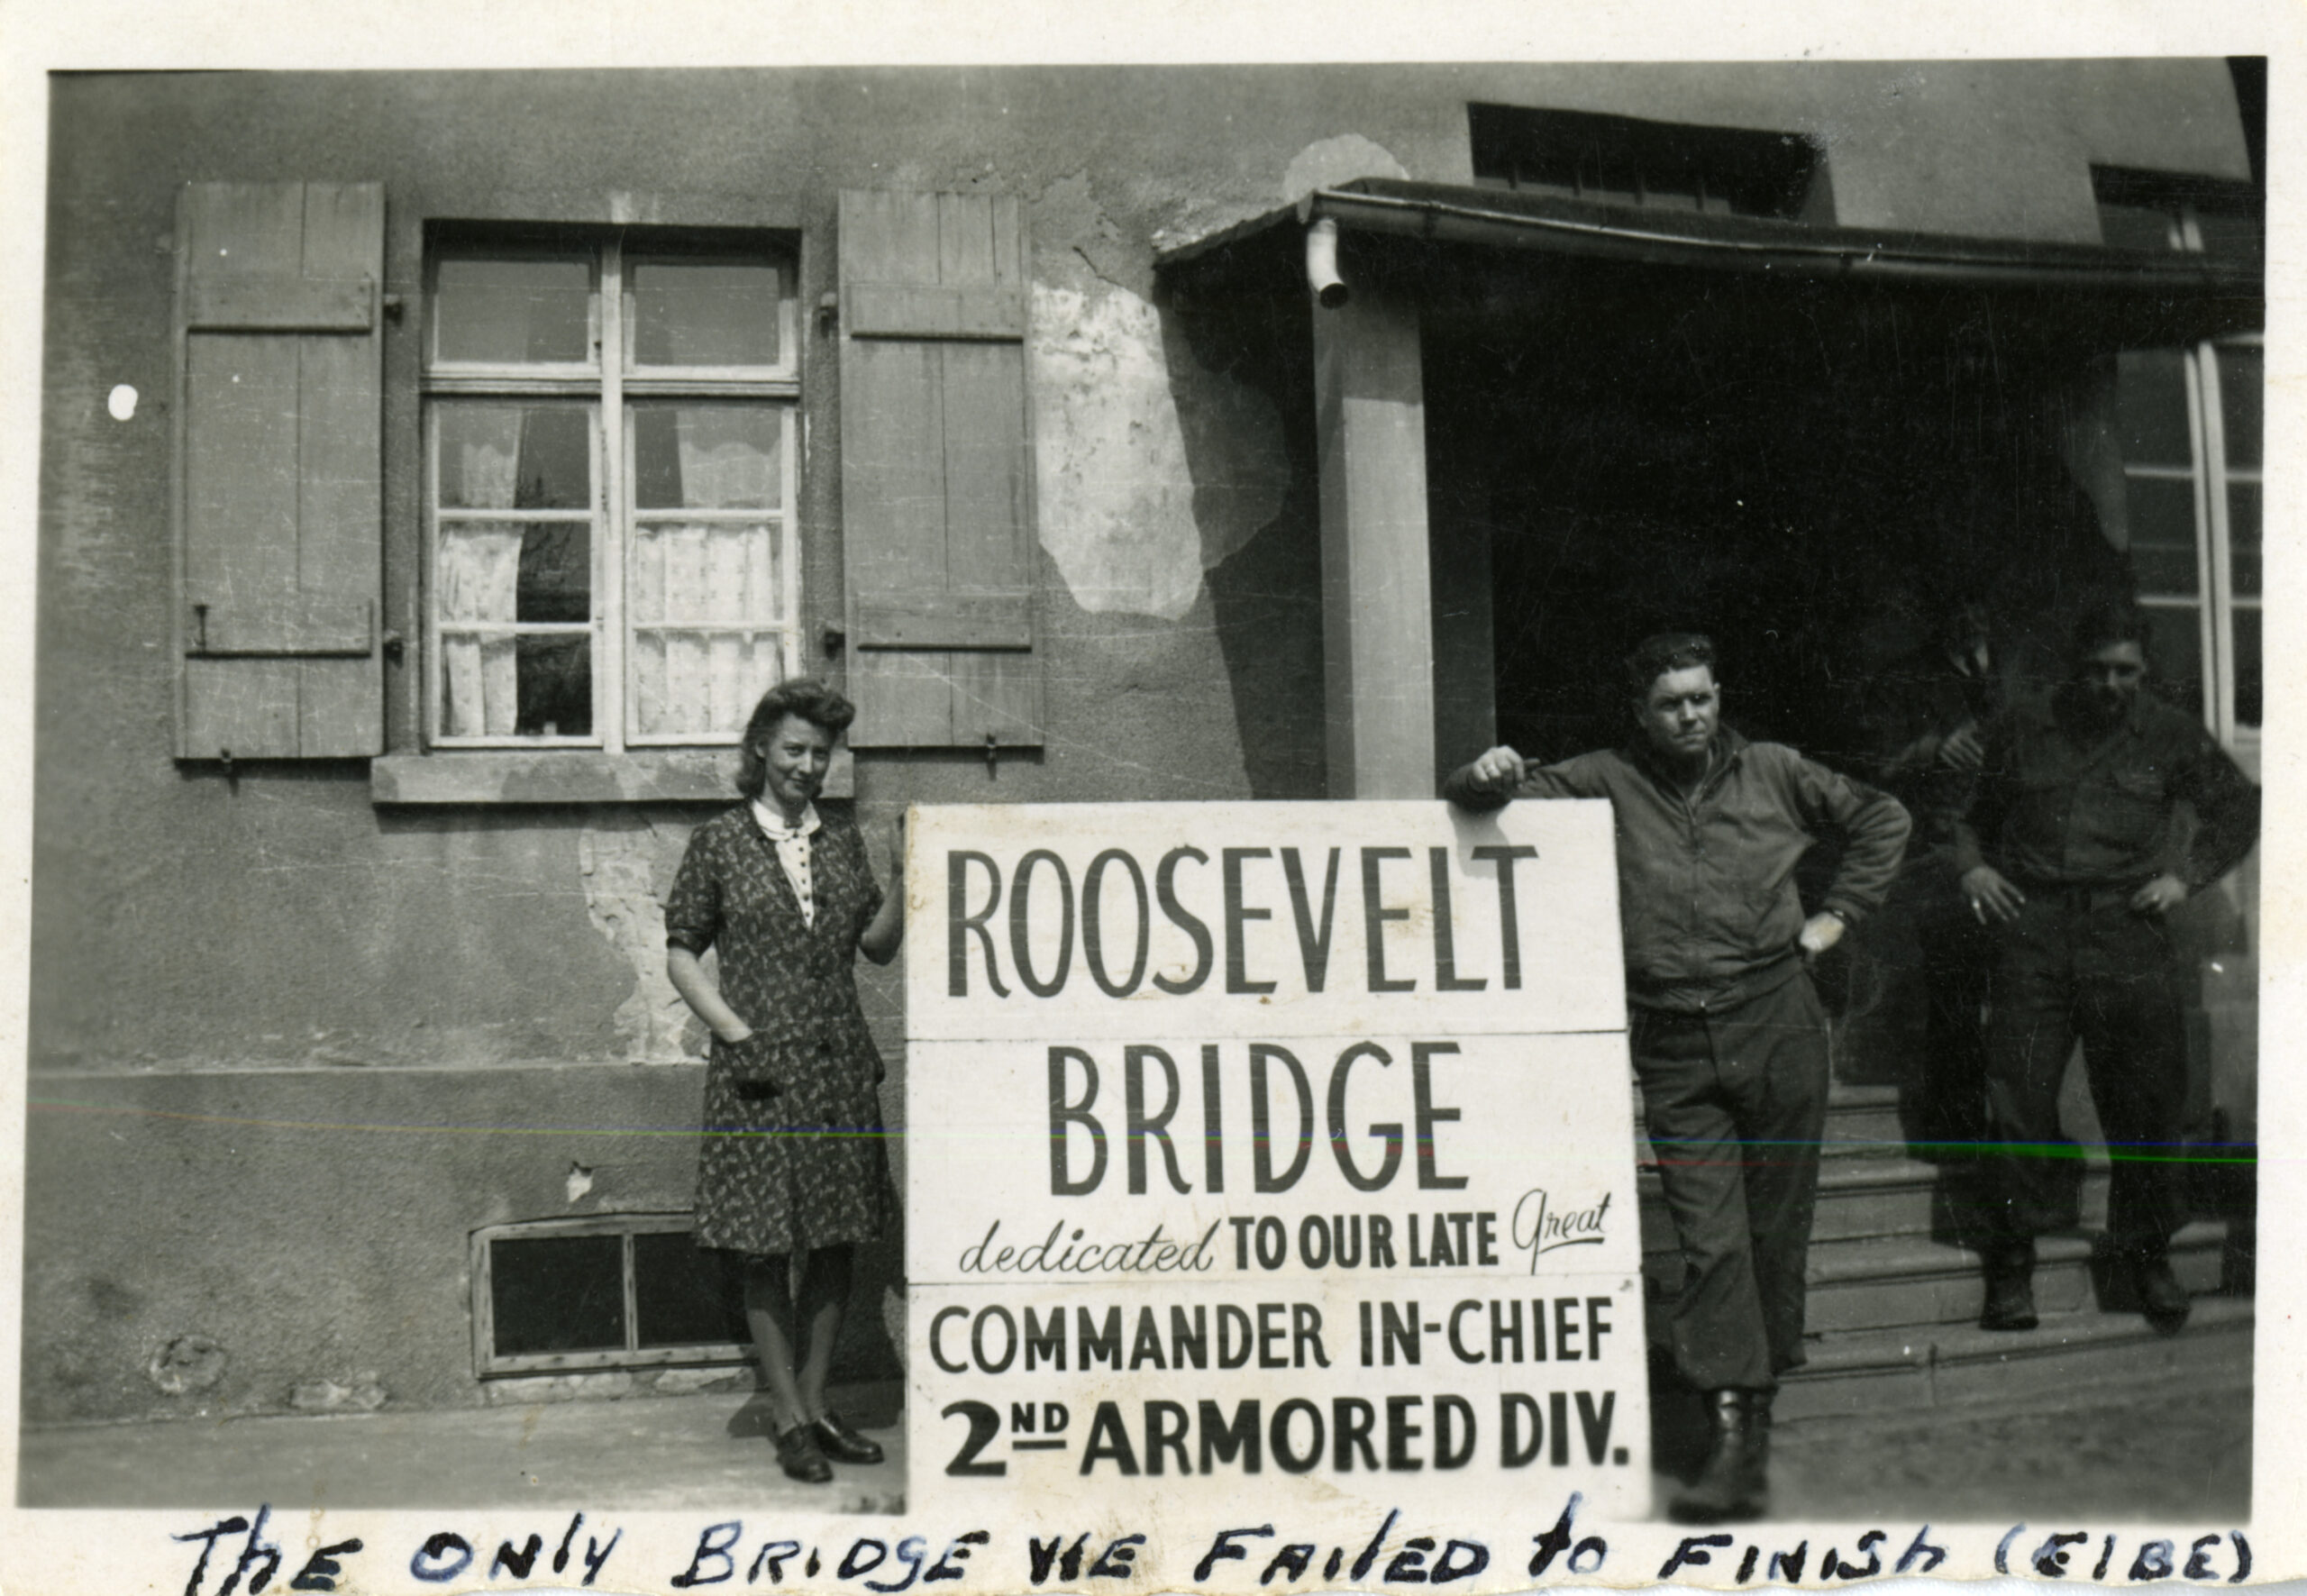 """American serviceman and a German woman posing with a sign that reads  """"Roosevelt Bridge dedicated to our late great Commander in-chief 2nd Armored Div."""" ; another serviceman is standing on the steps of the building in the background.  Personal caption on front: """"The only bridge we failed to finish (Elbe) ."""" Westerhusen, Germany. April 1945"""